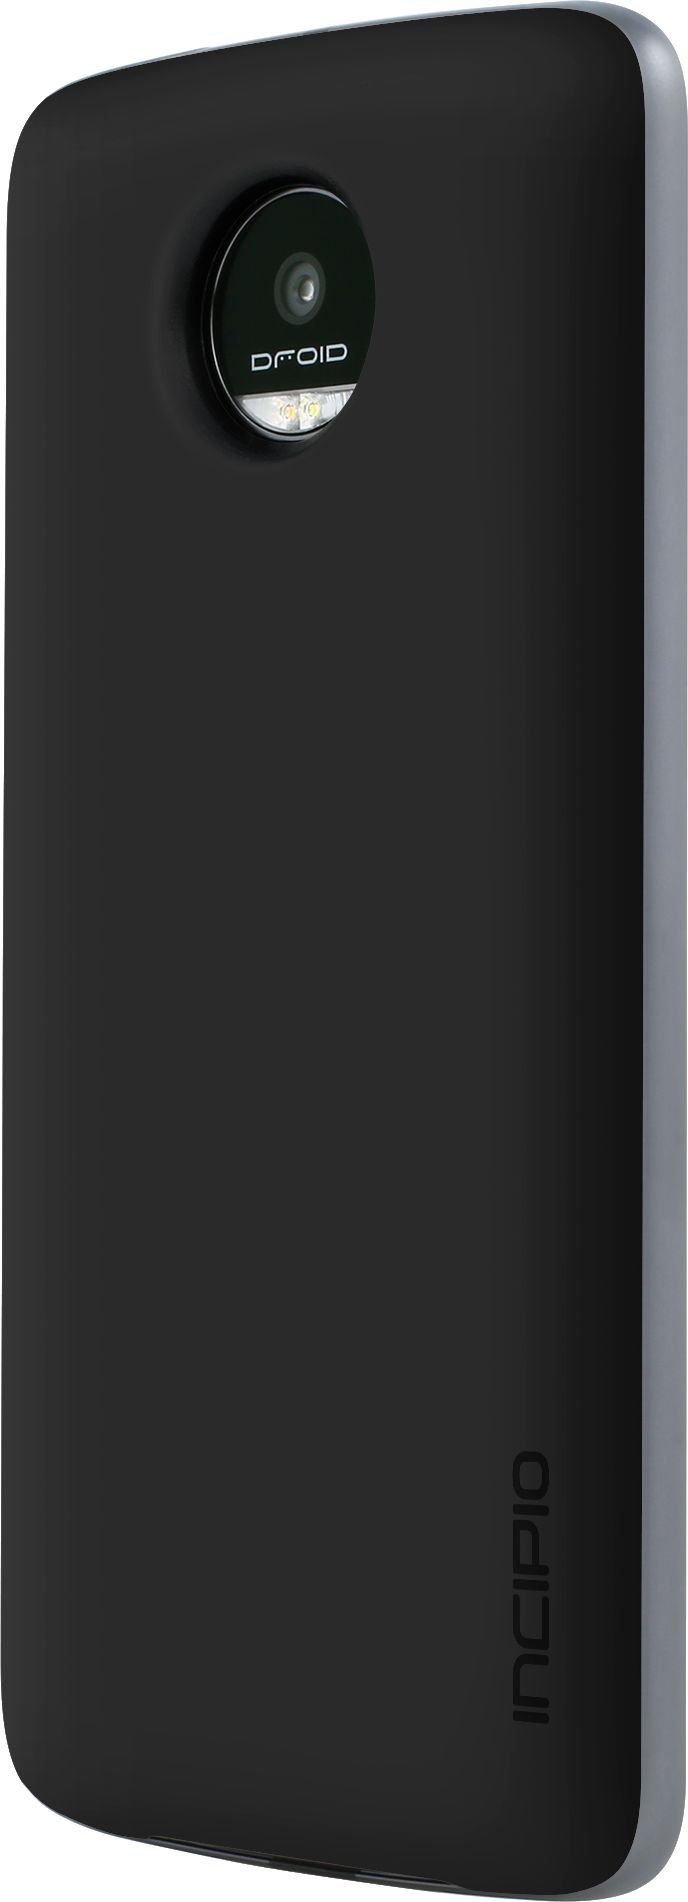 Incipio OffGrid Power Pack Backup Battery Case for Moto Z Devices - Black by Incipio